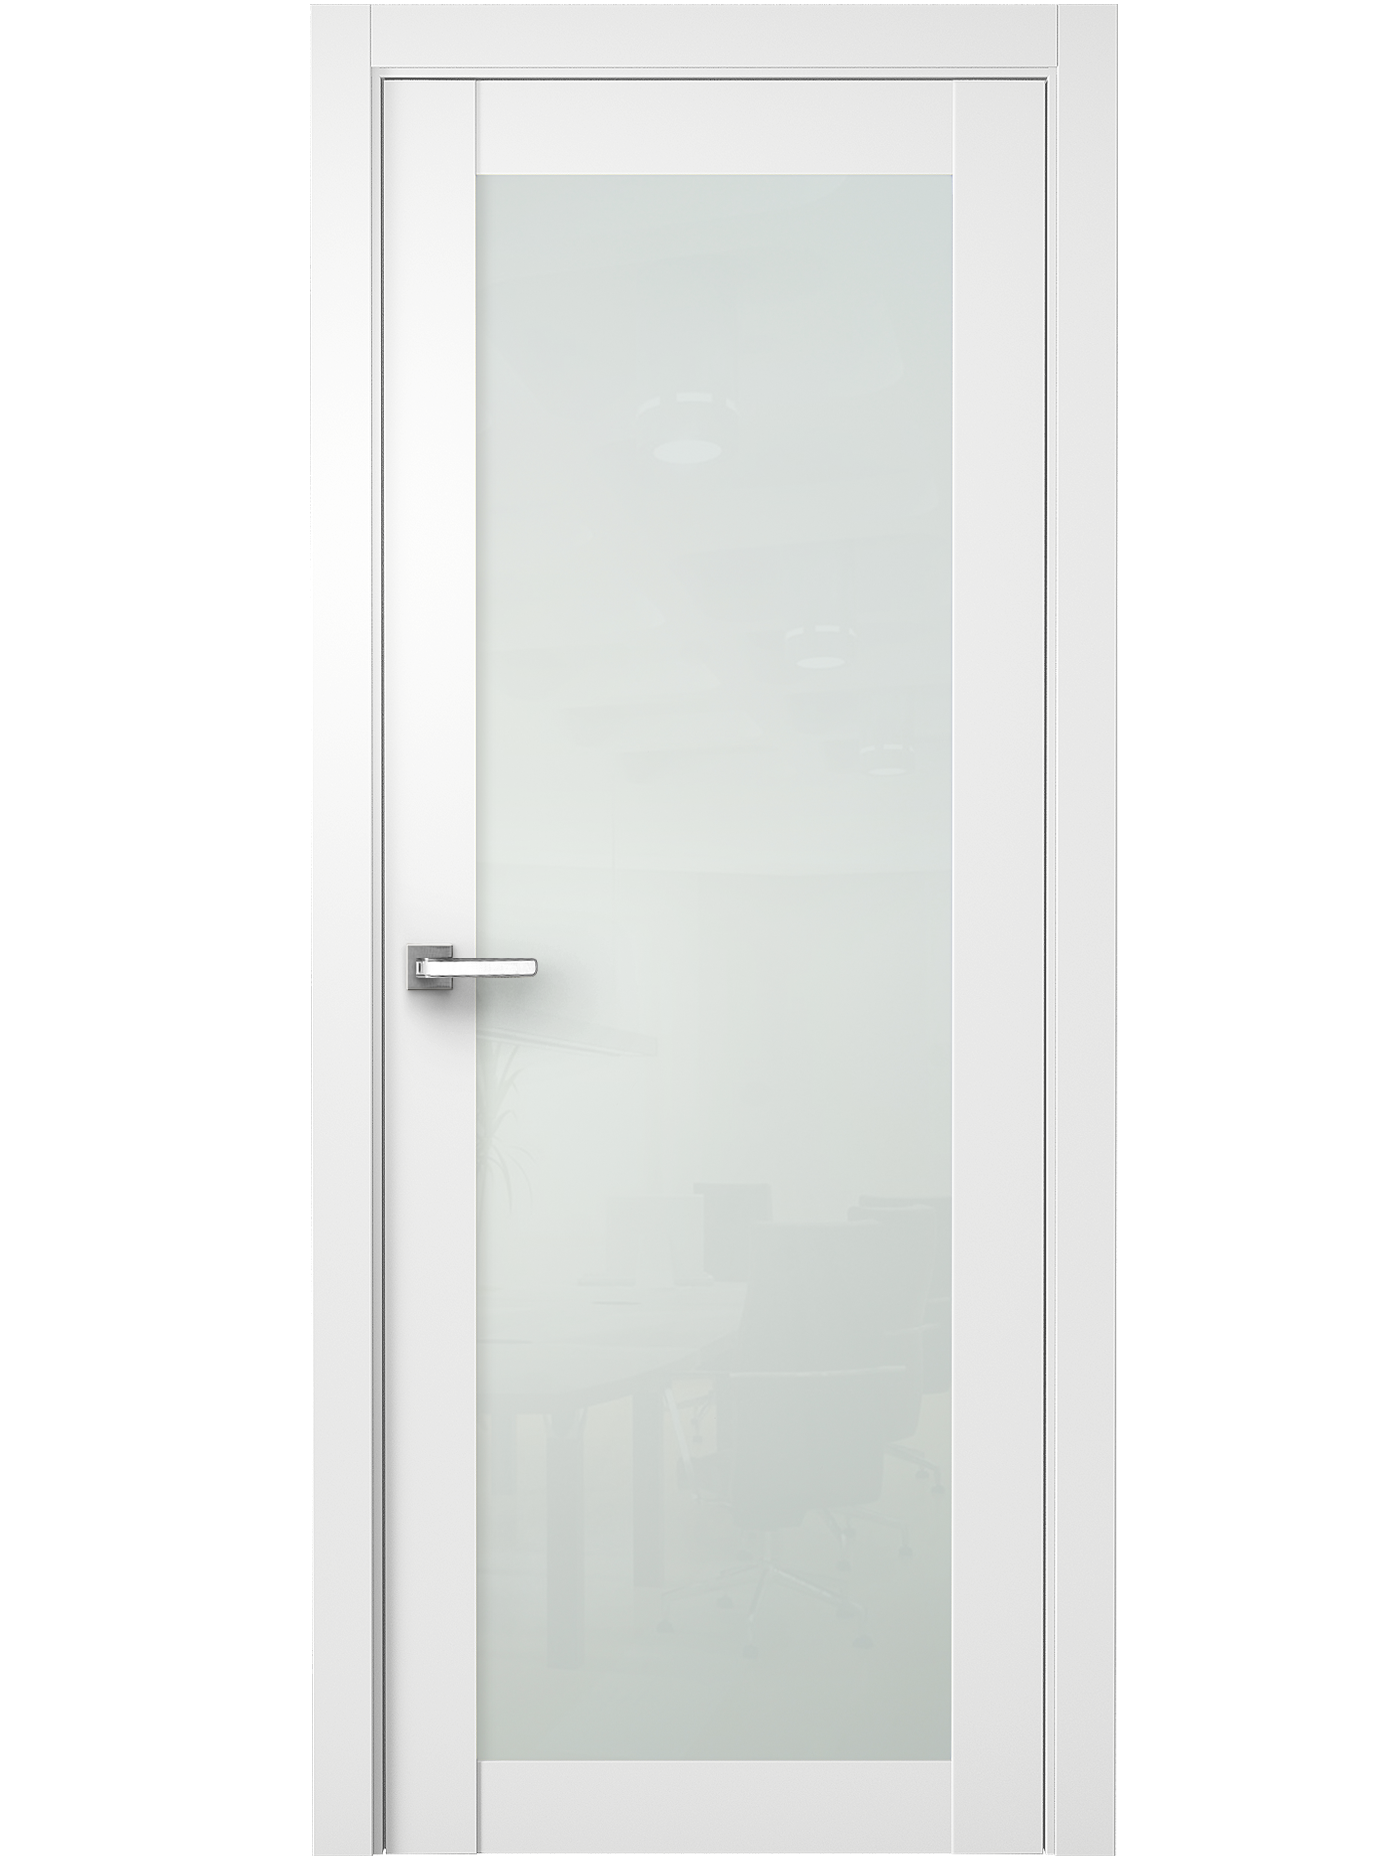 Image Nedovento Interior Door Polar White/ White Triplex Glass 0